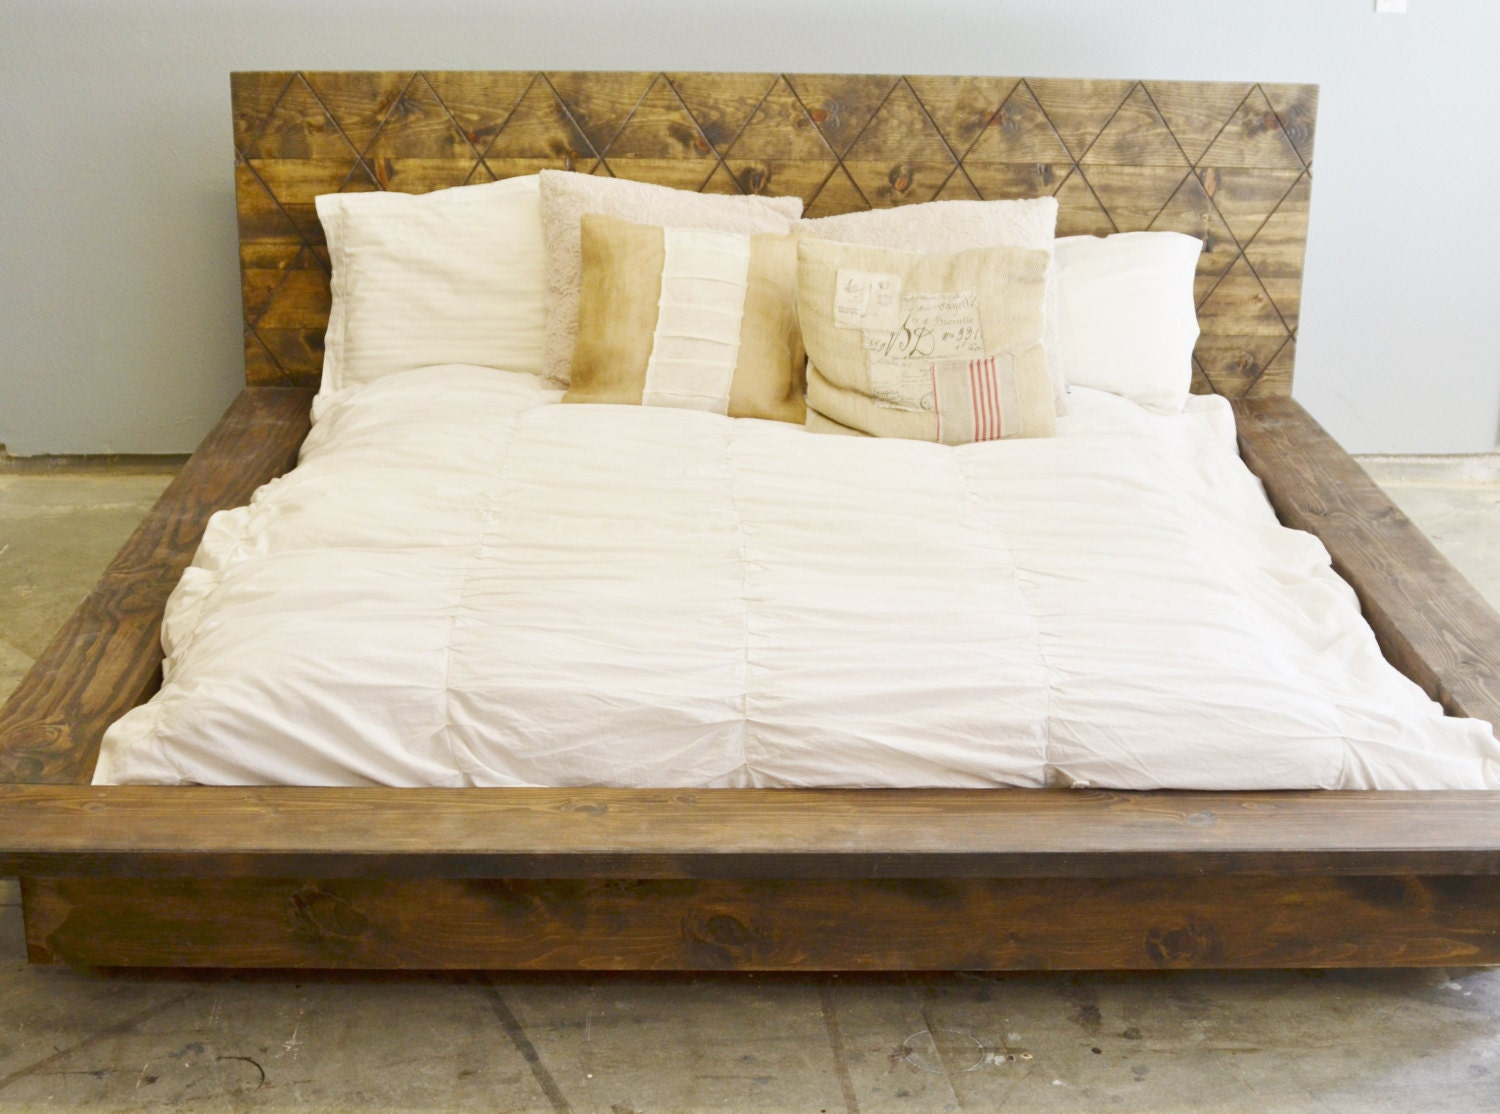 rustic wood platform bed frame with patterned. Black Bedroom Furniture Sets. Home Design Ideas